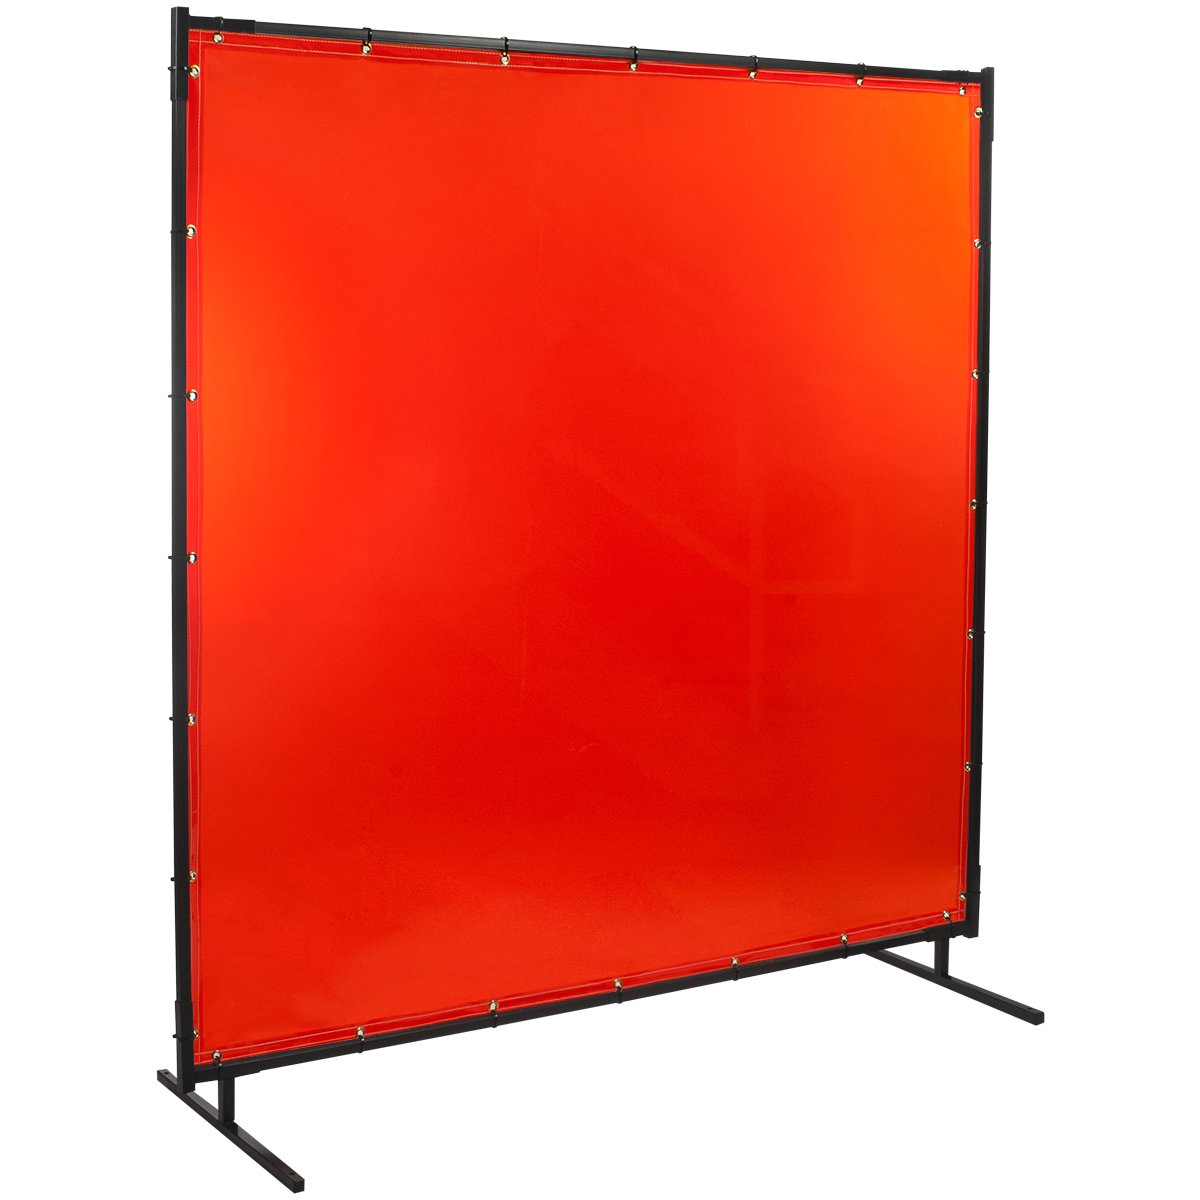 Steiner, 538-6X6, Welding Screen, 6 ft. W, 6 ft, Orange by Steiner